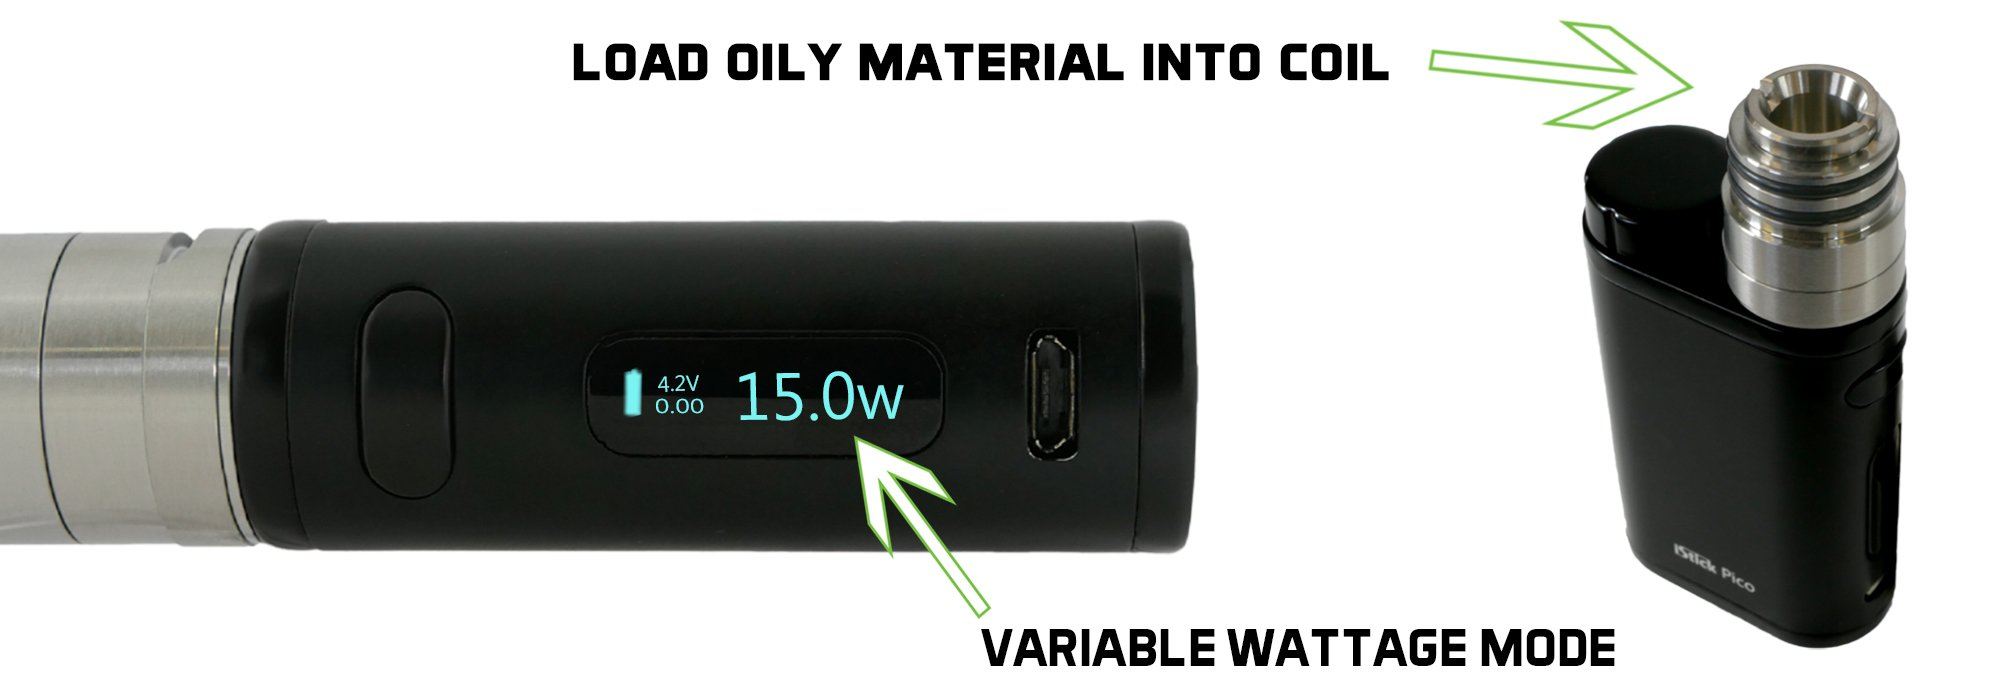 Sai Wattage Mode